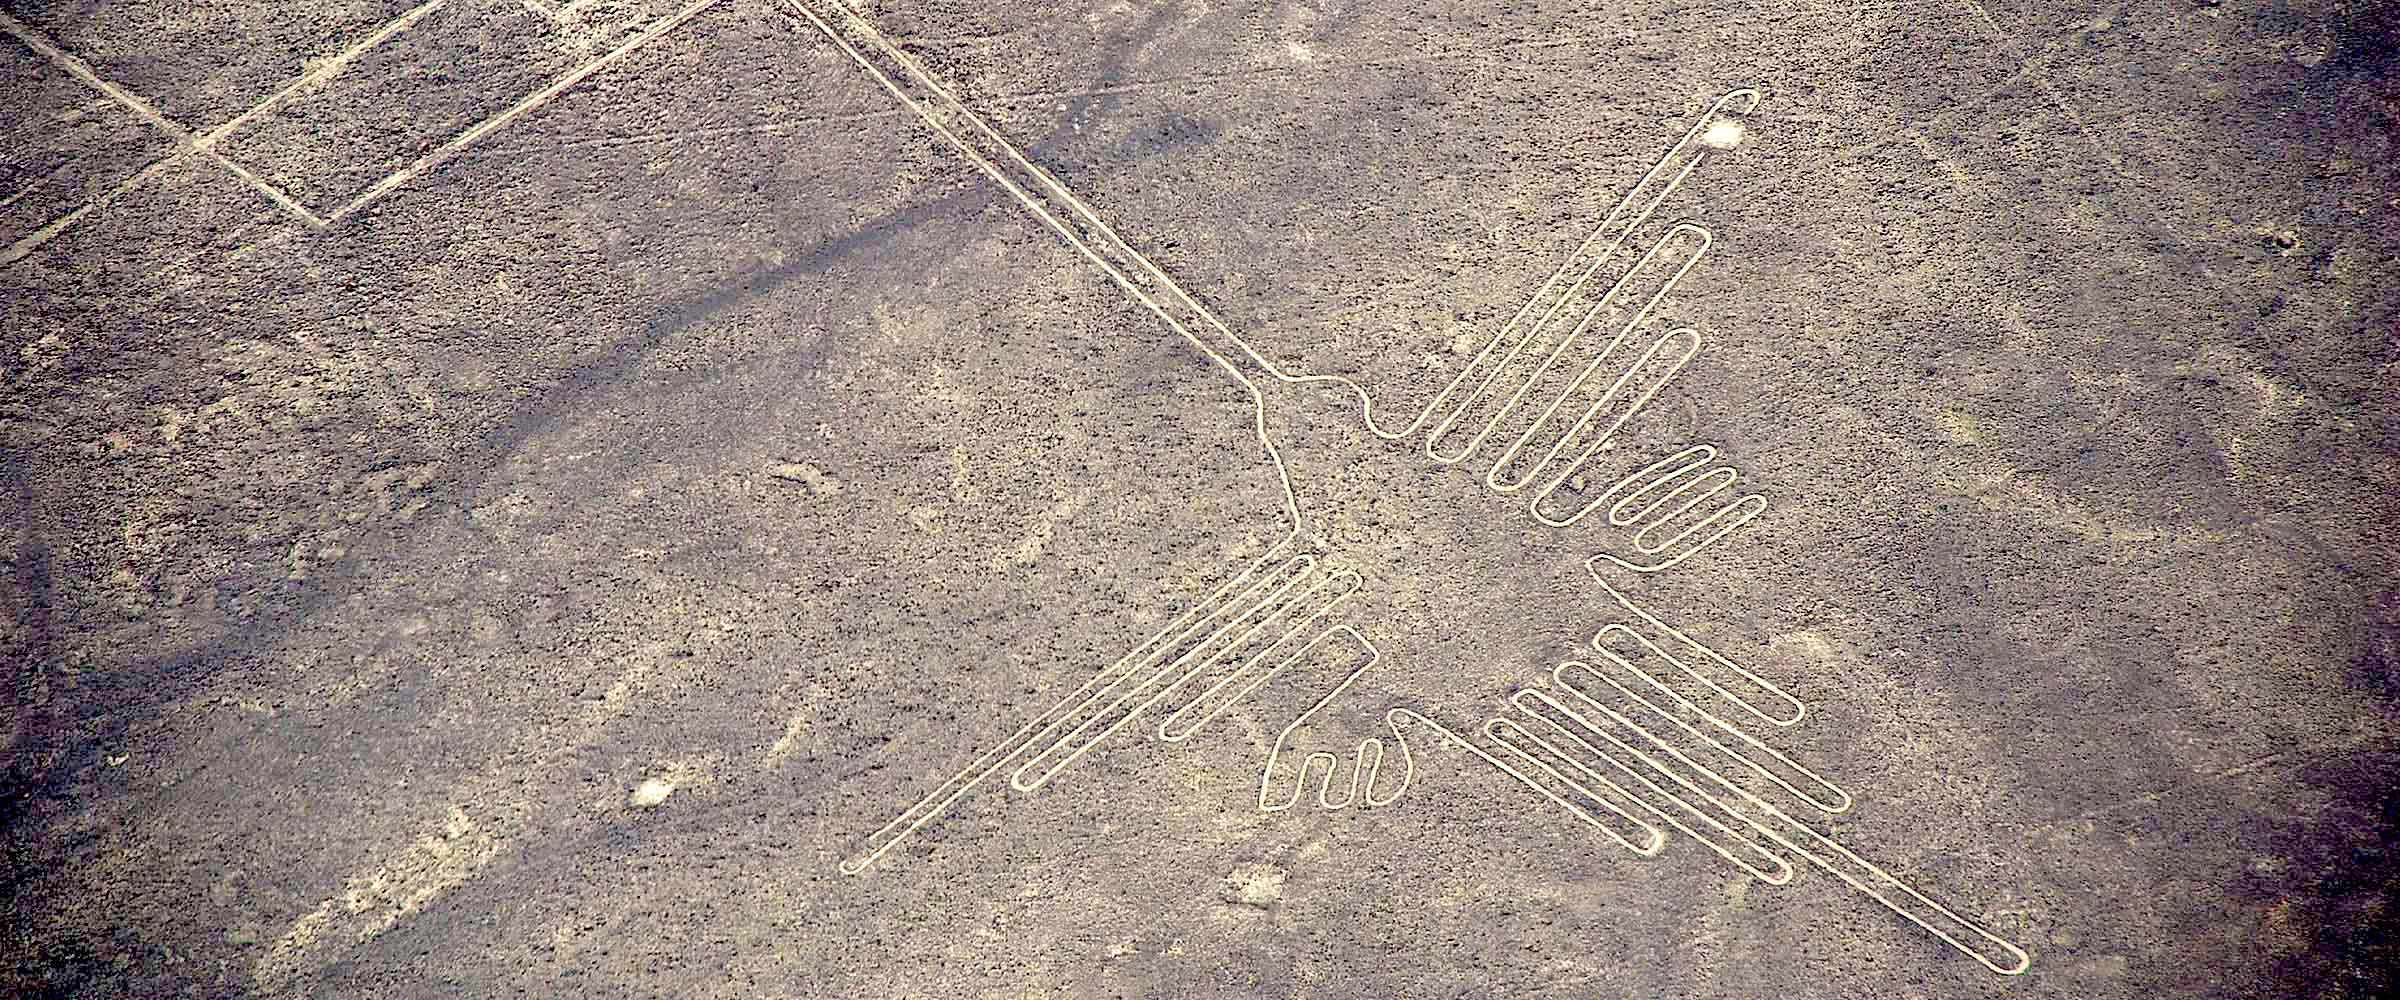 Ica Nazca Lines